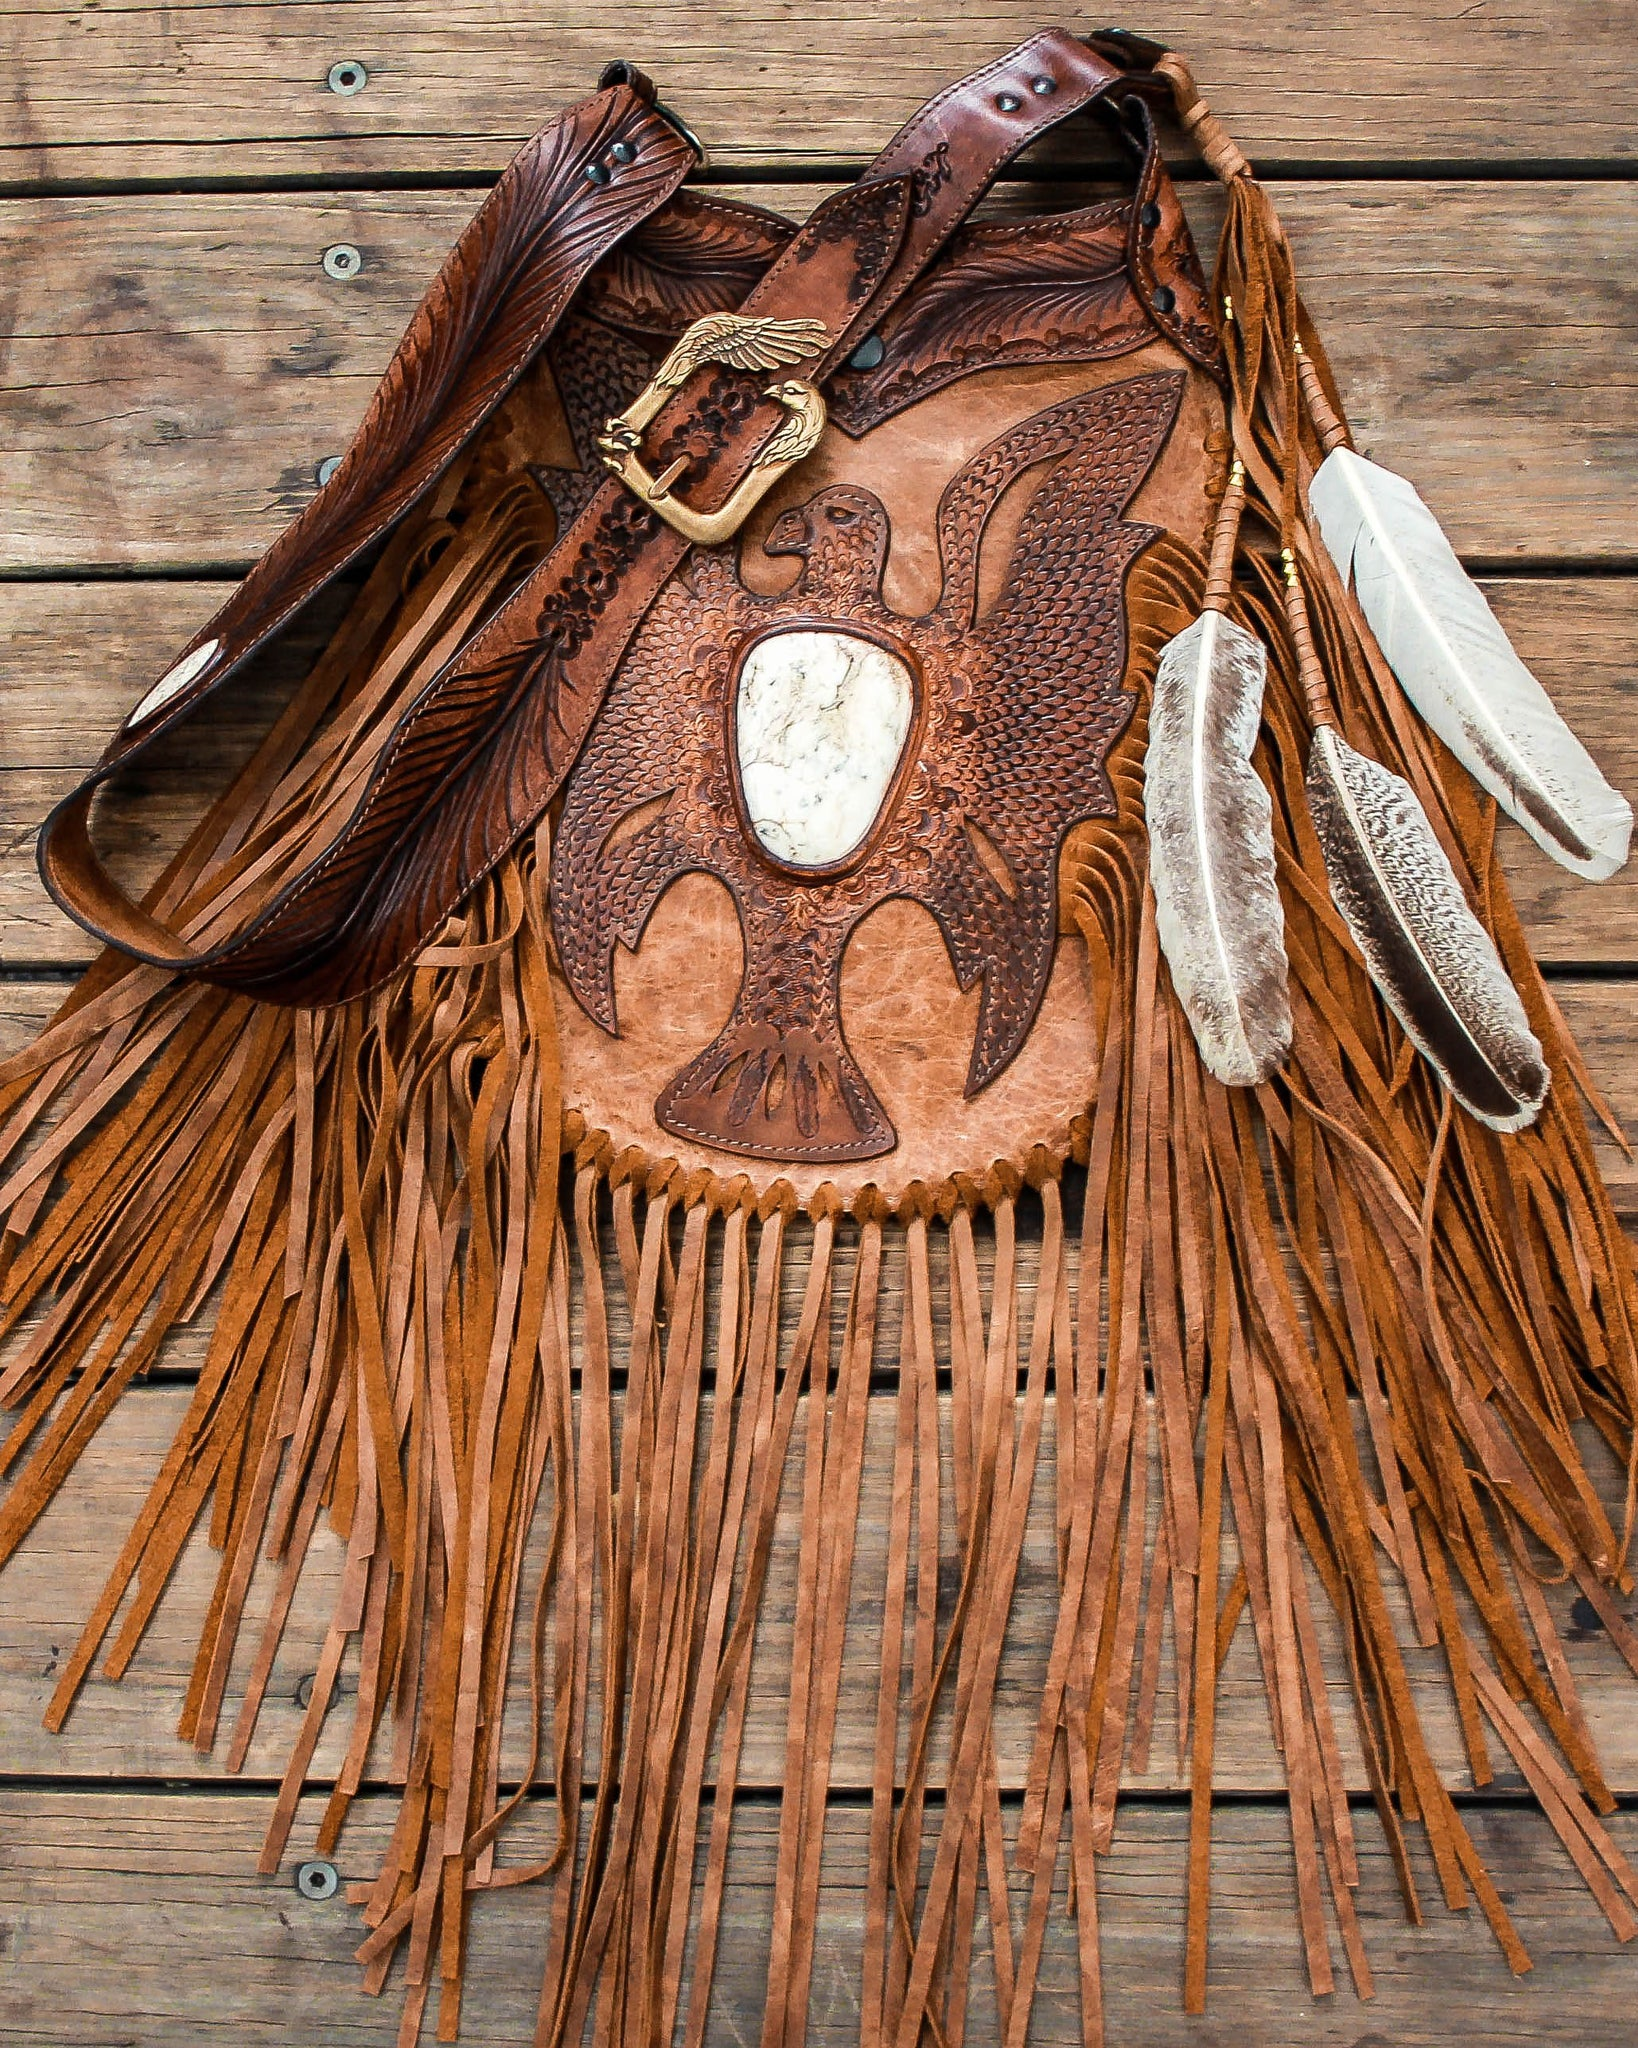 Apache Eagle Tasseled Bag with Howlite in distressed tan leather.